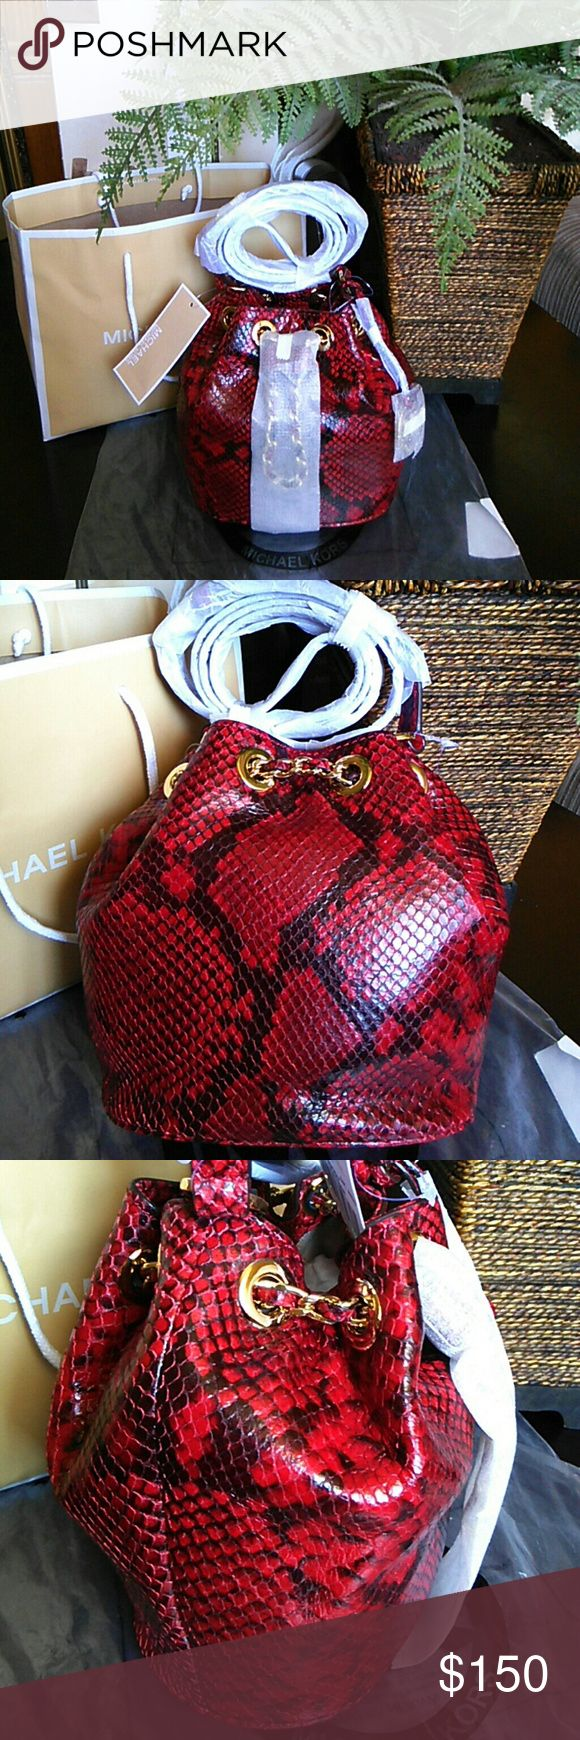 AUTHENTIC MICHAEL KORS DRAWSTRING CROSSBODY BAG FRANKIE EMBOSSED LEATHER  COLOR RED WITH GOLD HARDWARE MICHAEL Michael Kors Bags Crossbody Bags